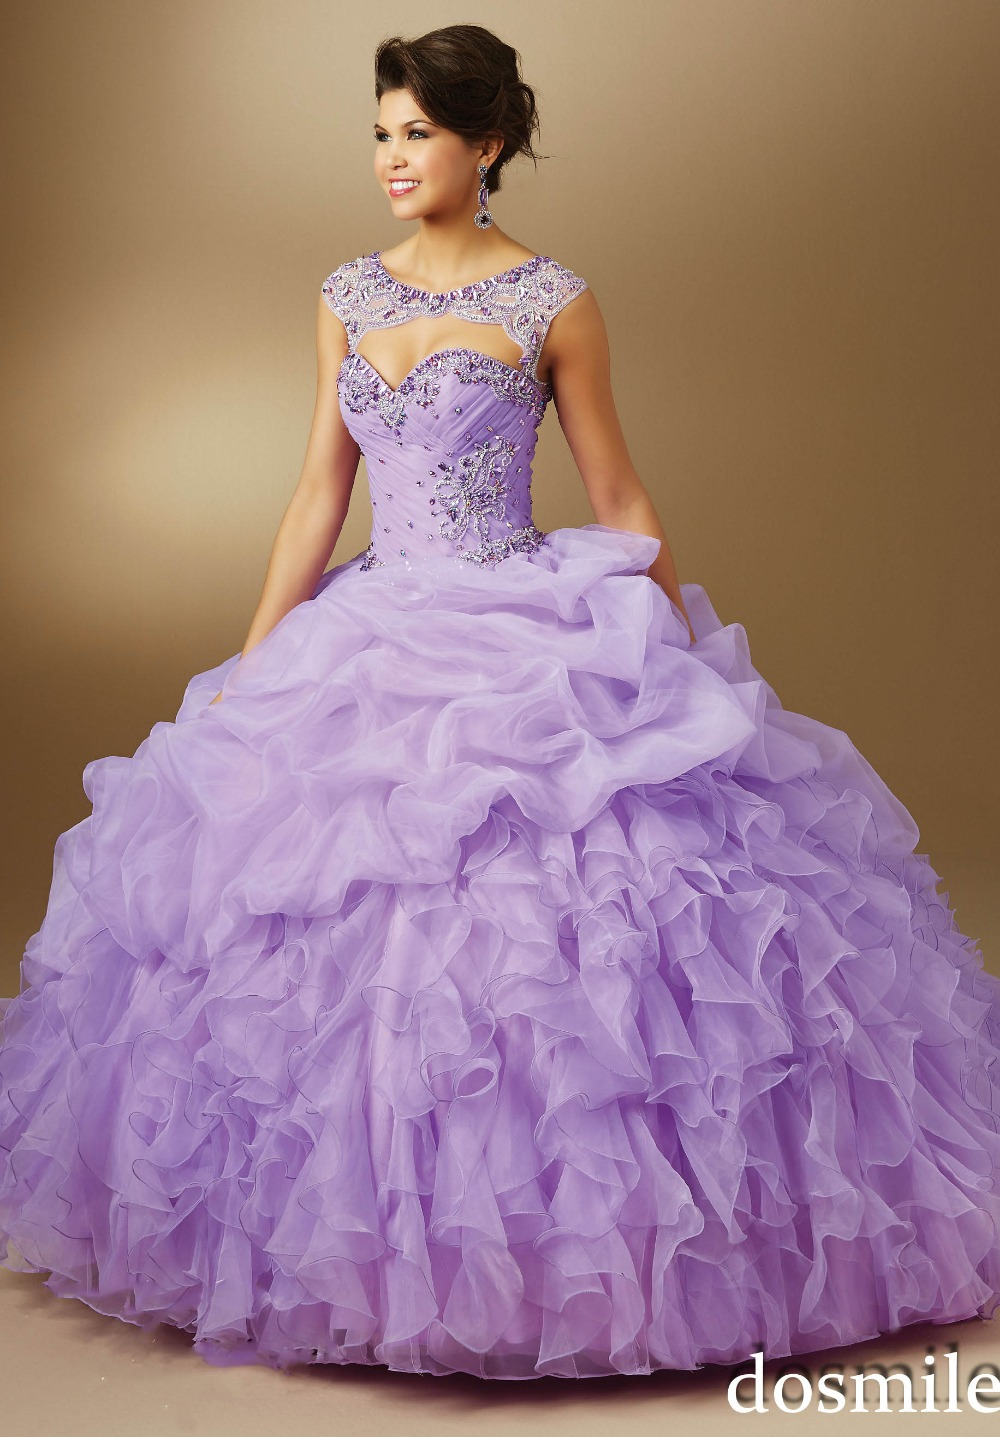 8f3db66d013 Lavender Ball Gown Quinceanera Dresses - Gomes Weine AG